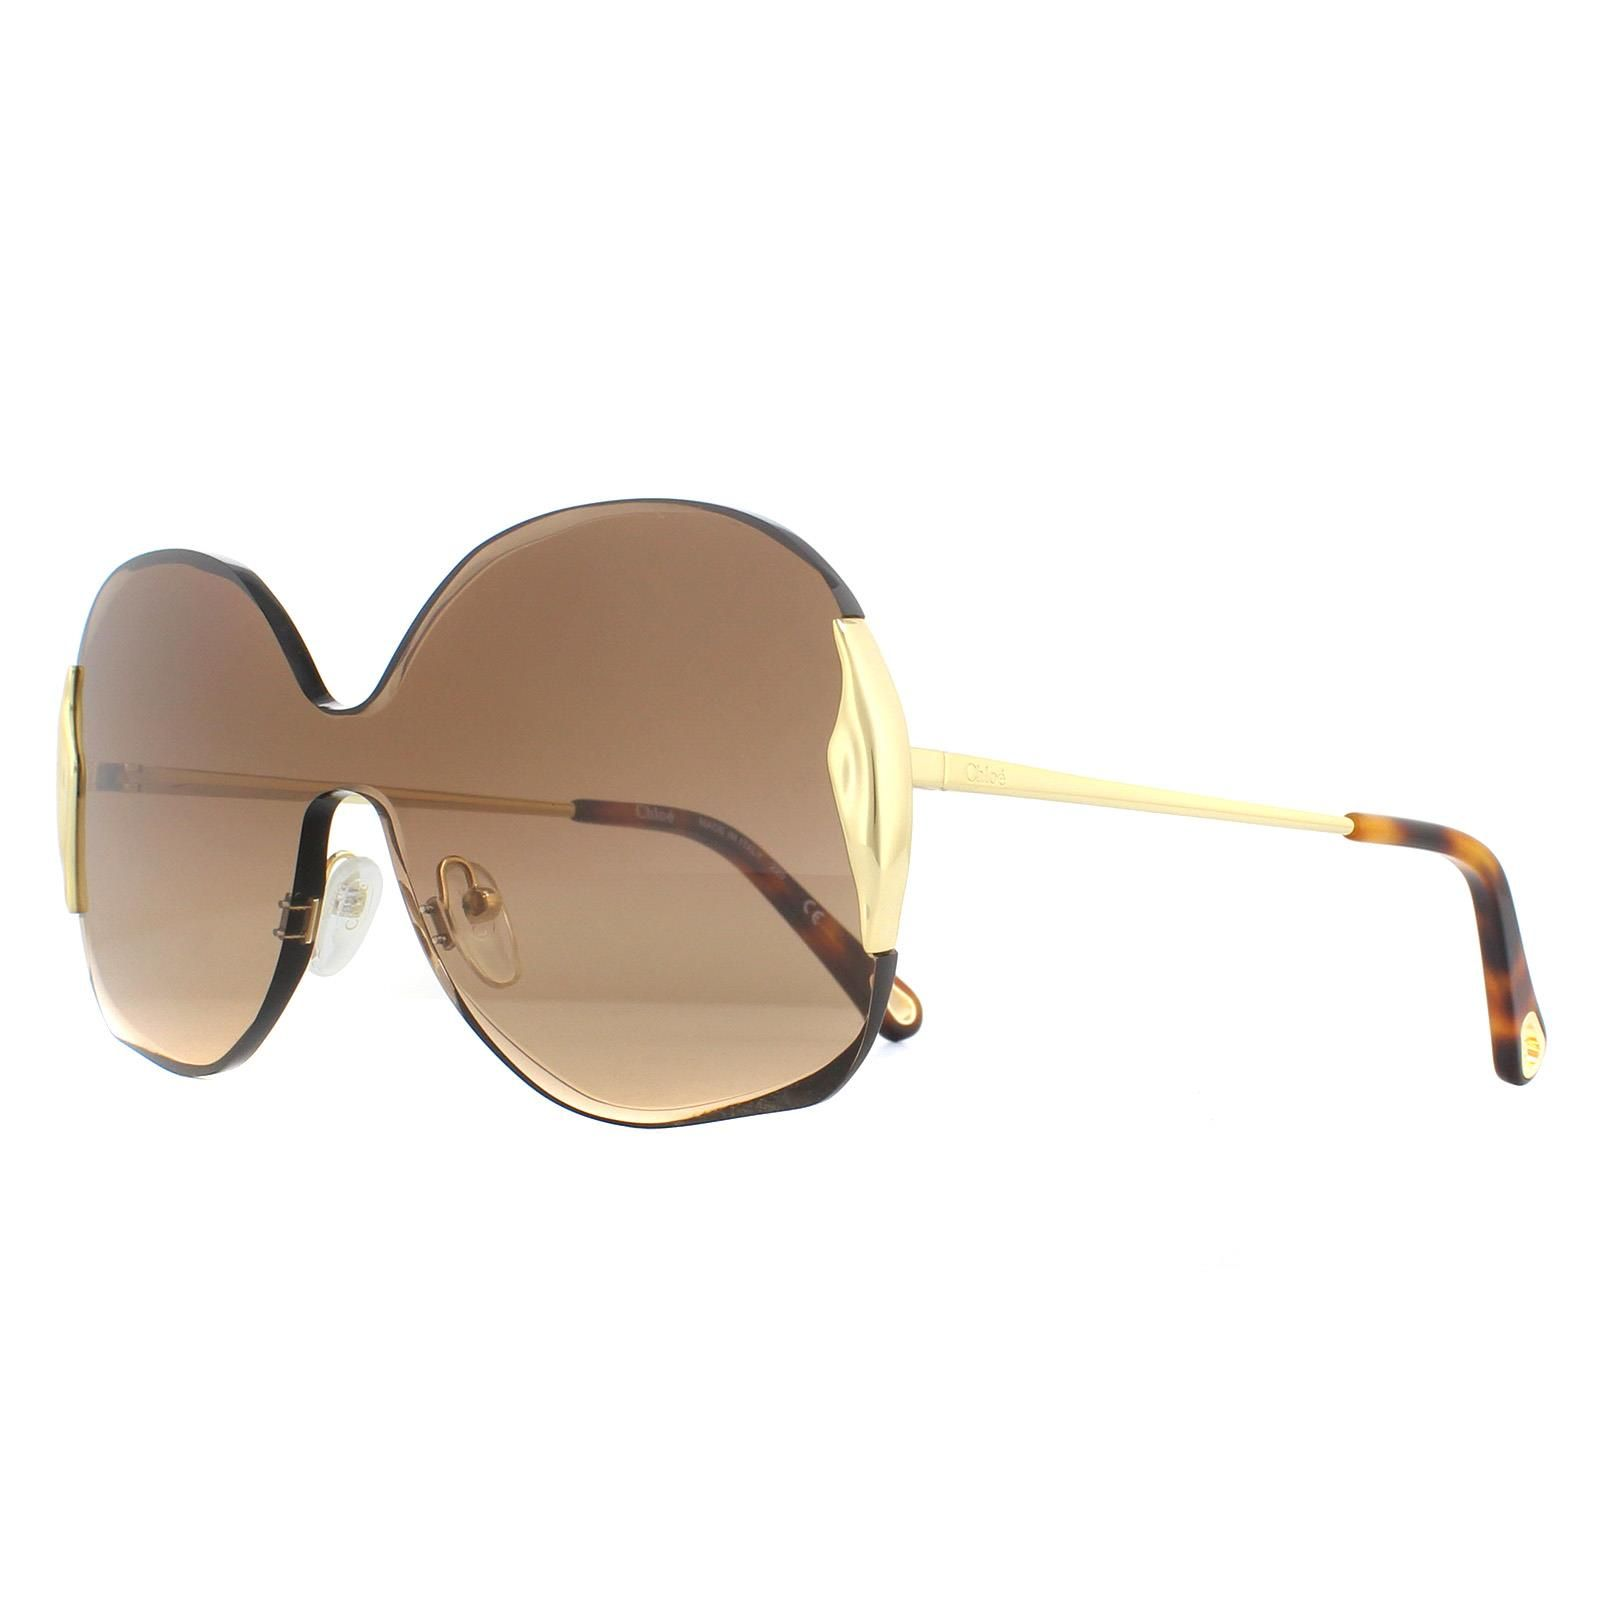 Chloe Sunglasses CE162S Curtis 742 Gold Brown Gradient